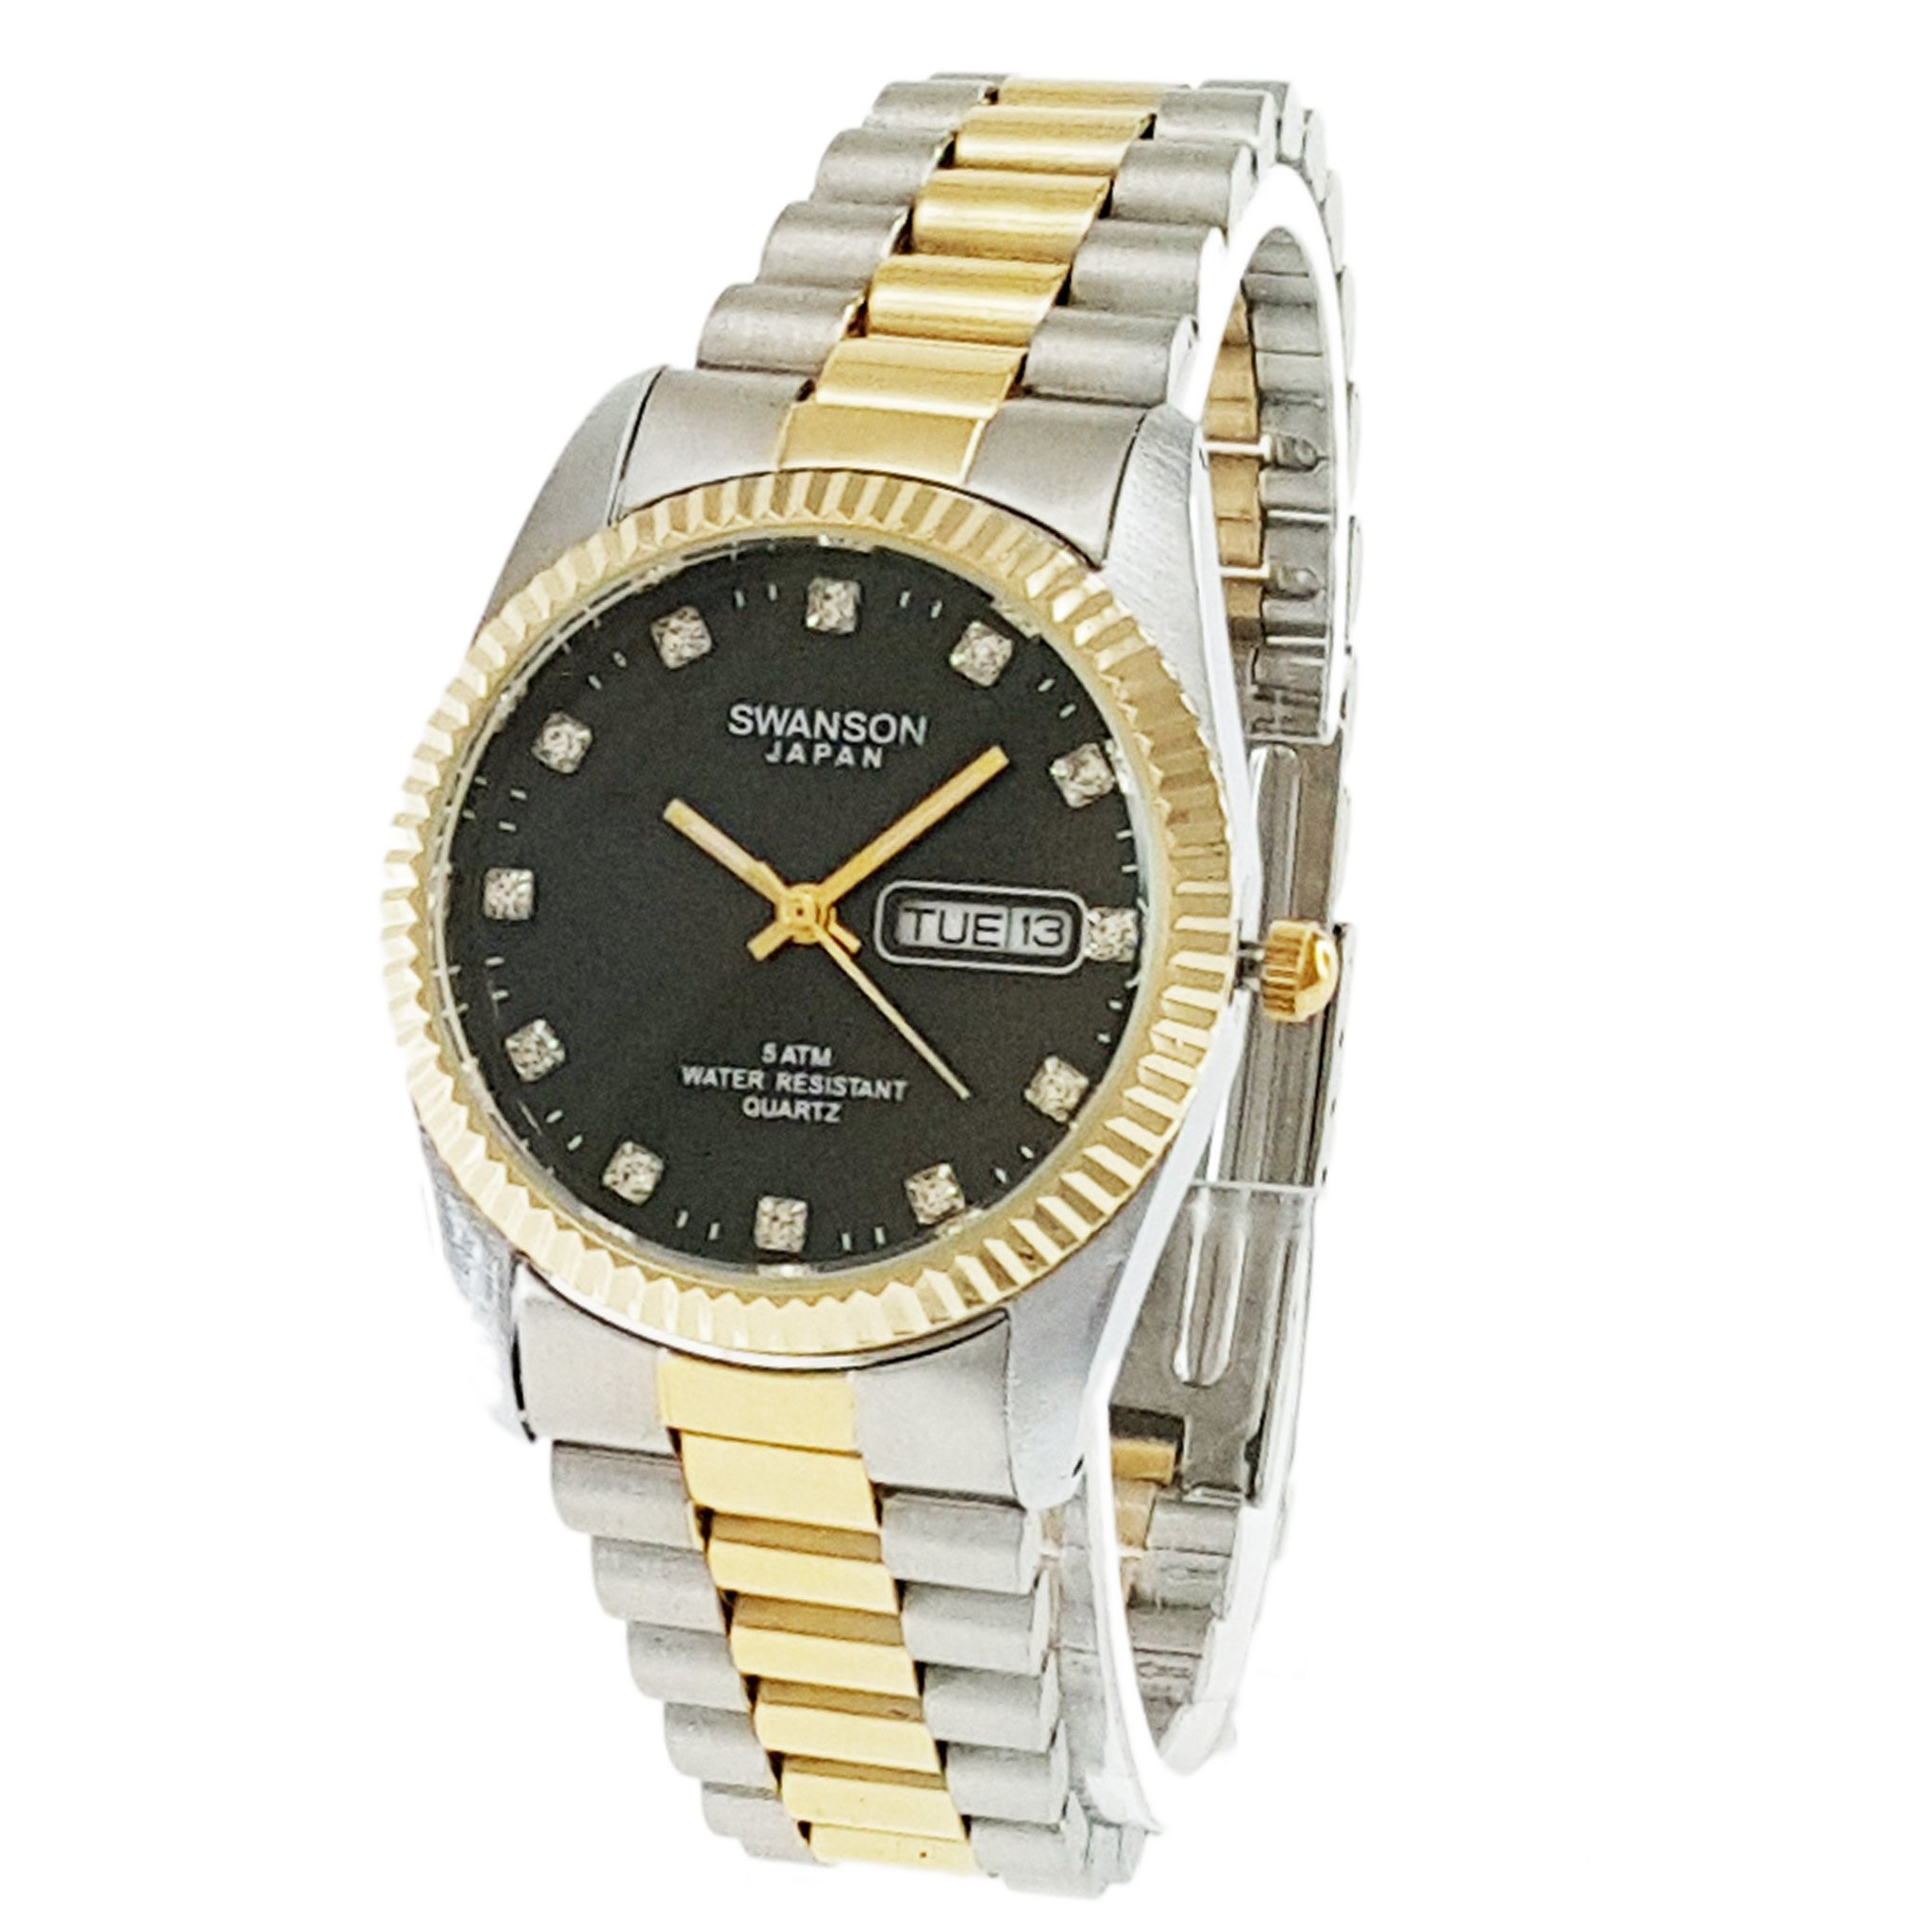 Swanson Men's Two-tone Day-Date Watch Black Stone Dial with Travel Case